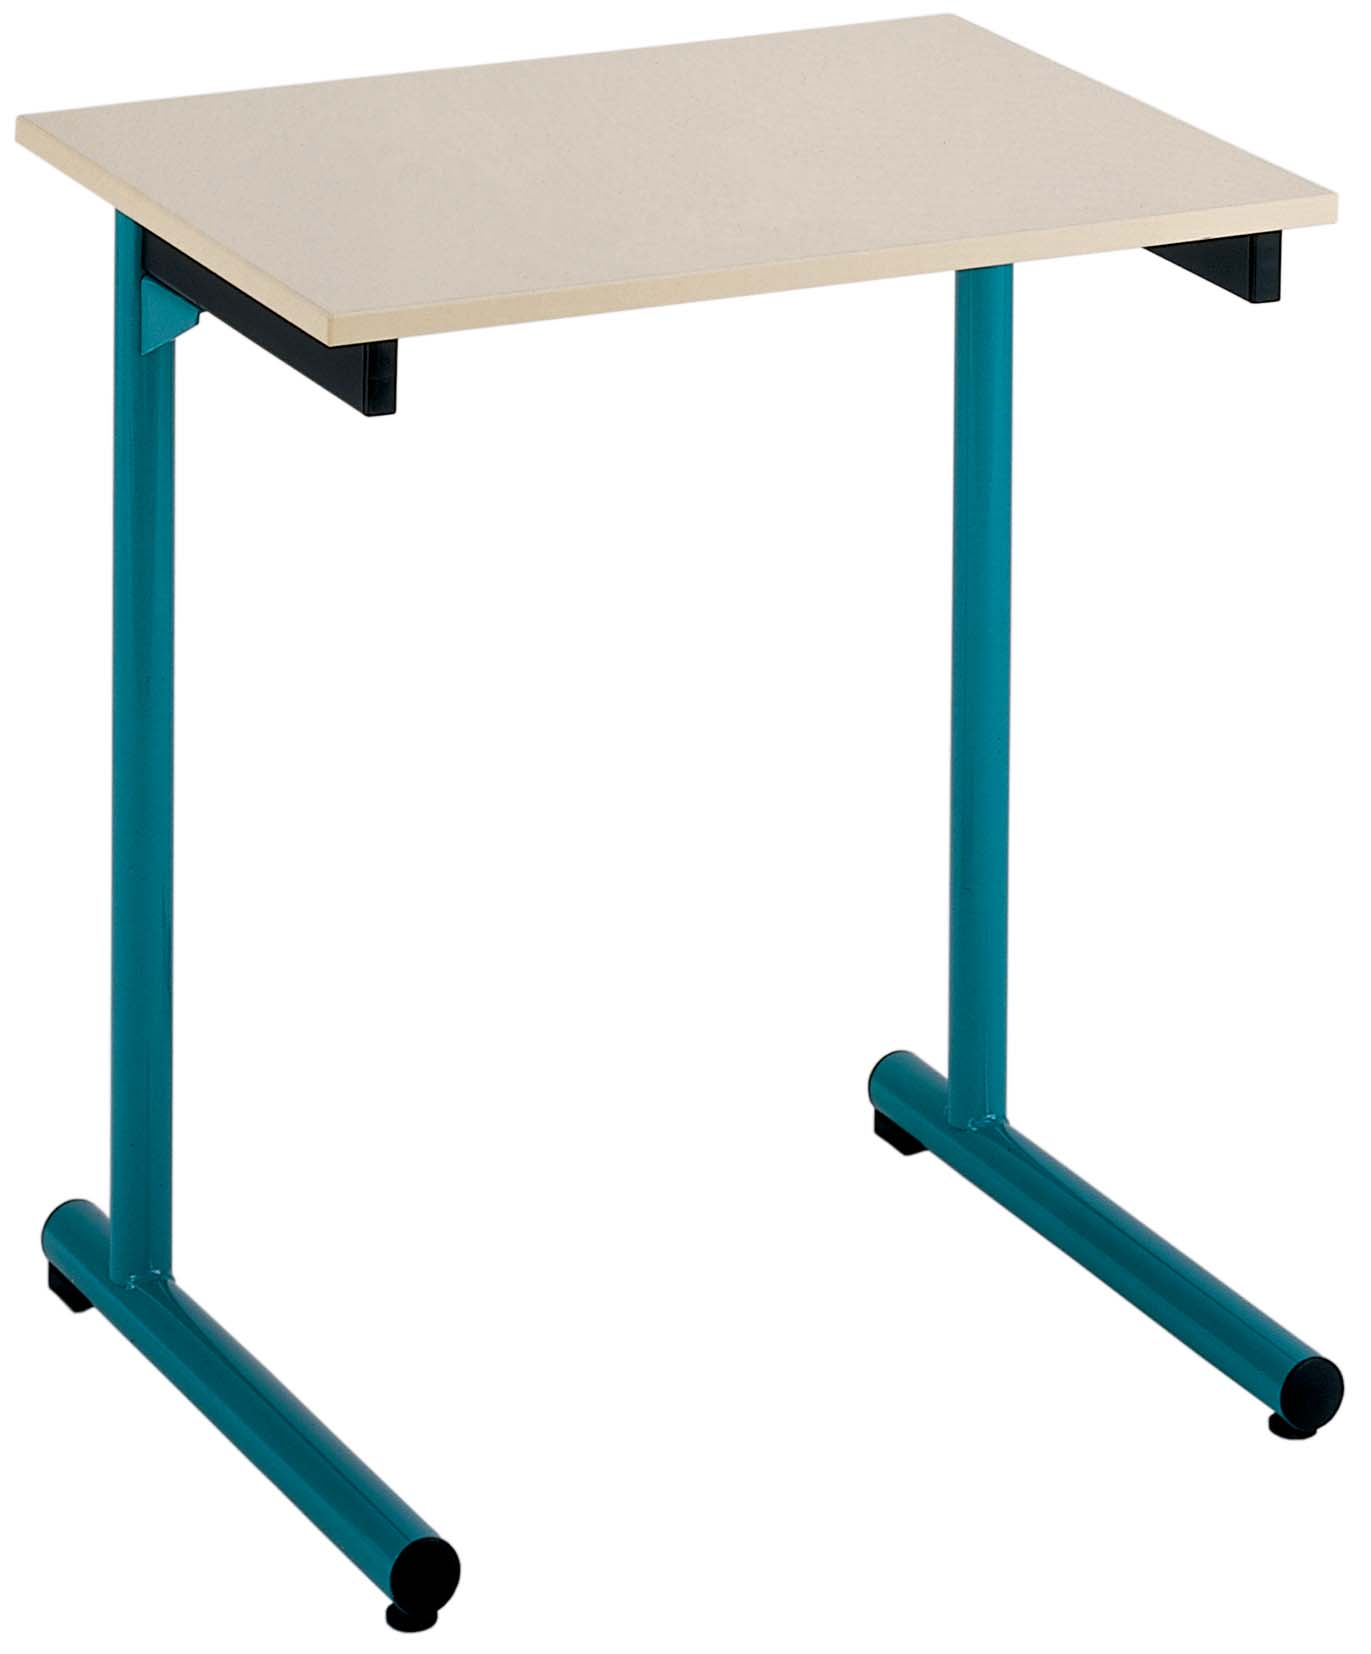 Table scolaire fixe START 2